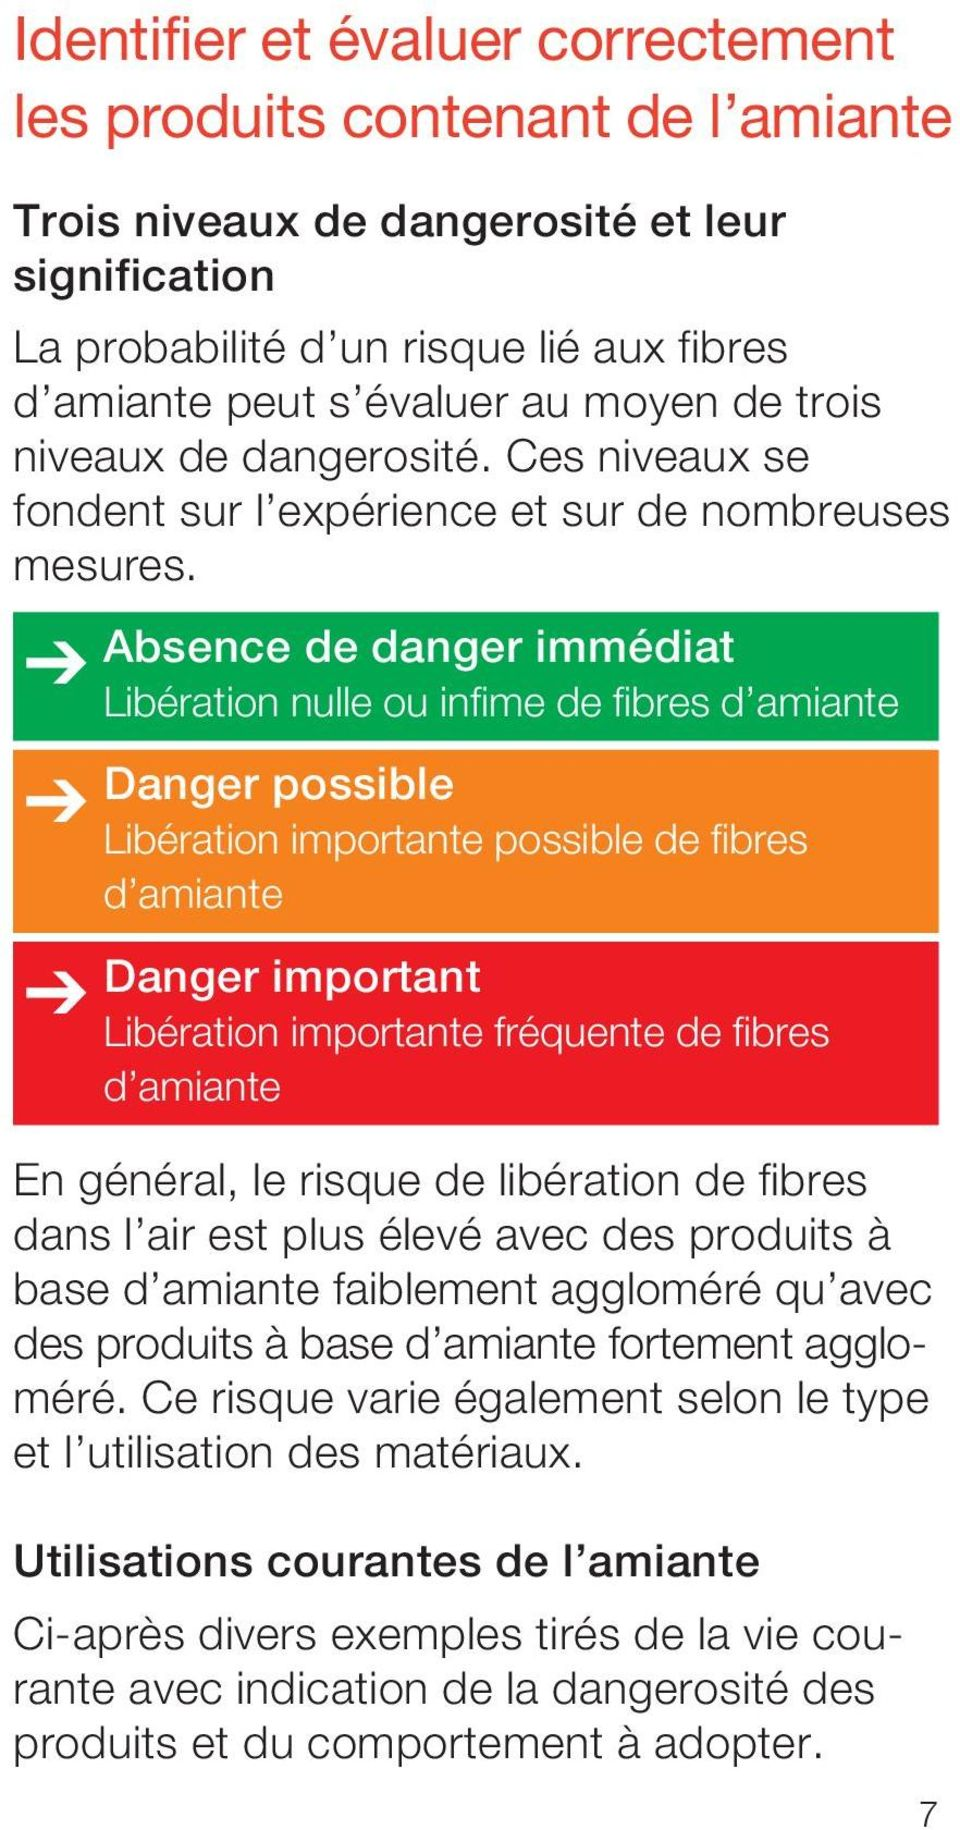 Absence de danger immédiat Libération nulle ou infime de fibres d amiante Danger possible Libération importante possible de fibres d amiante Danger important Libération importante fréquente de fibres